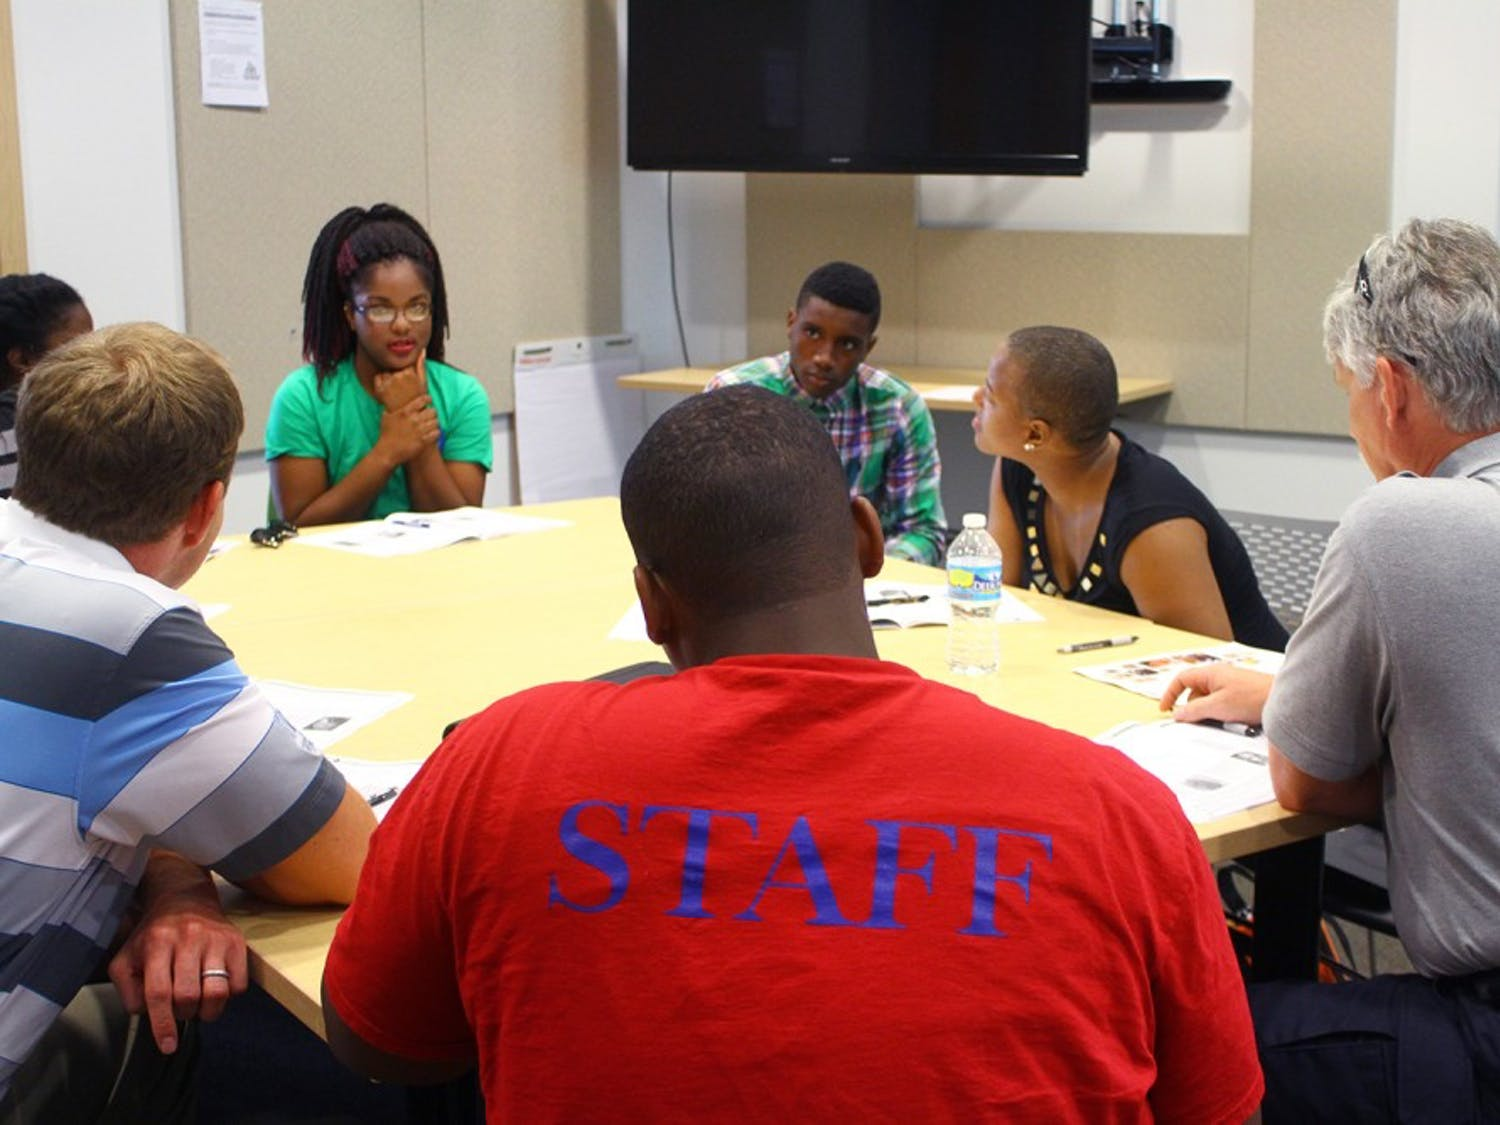 (Far left) Hargraves Community Center counselor Jazmine Mason-Carter brainstorms safety ideas with other trainees.